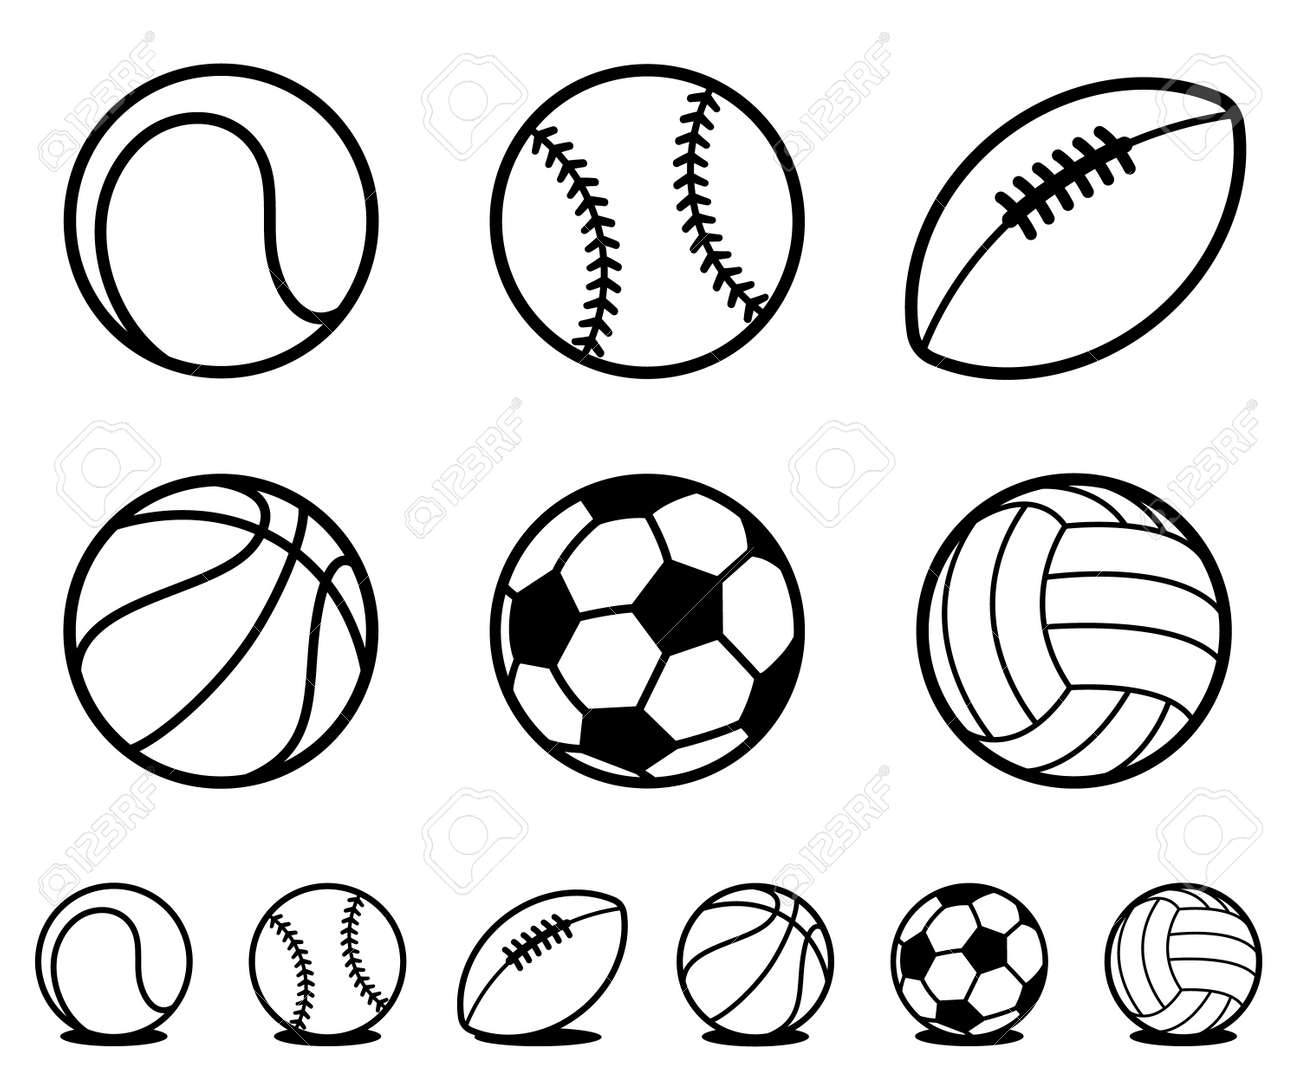 Set of six different black and white cartoon sports ball icons with accompanying line drawing variations